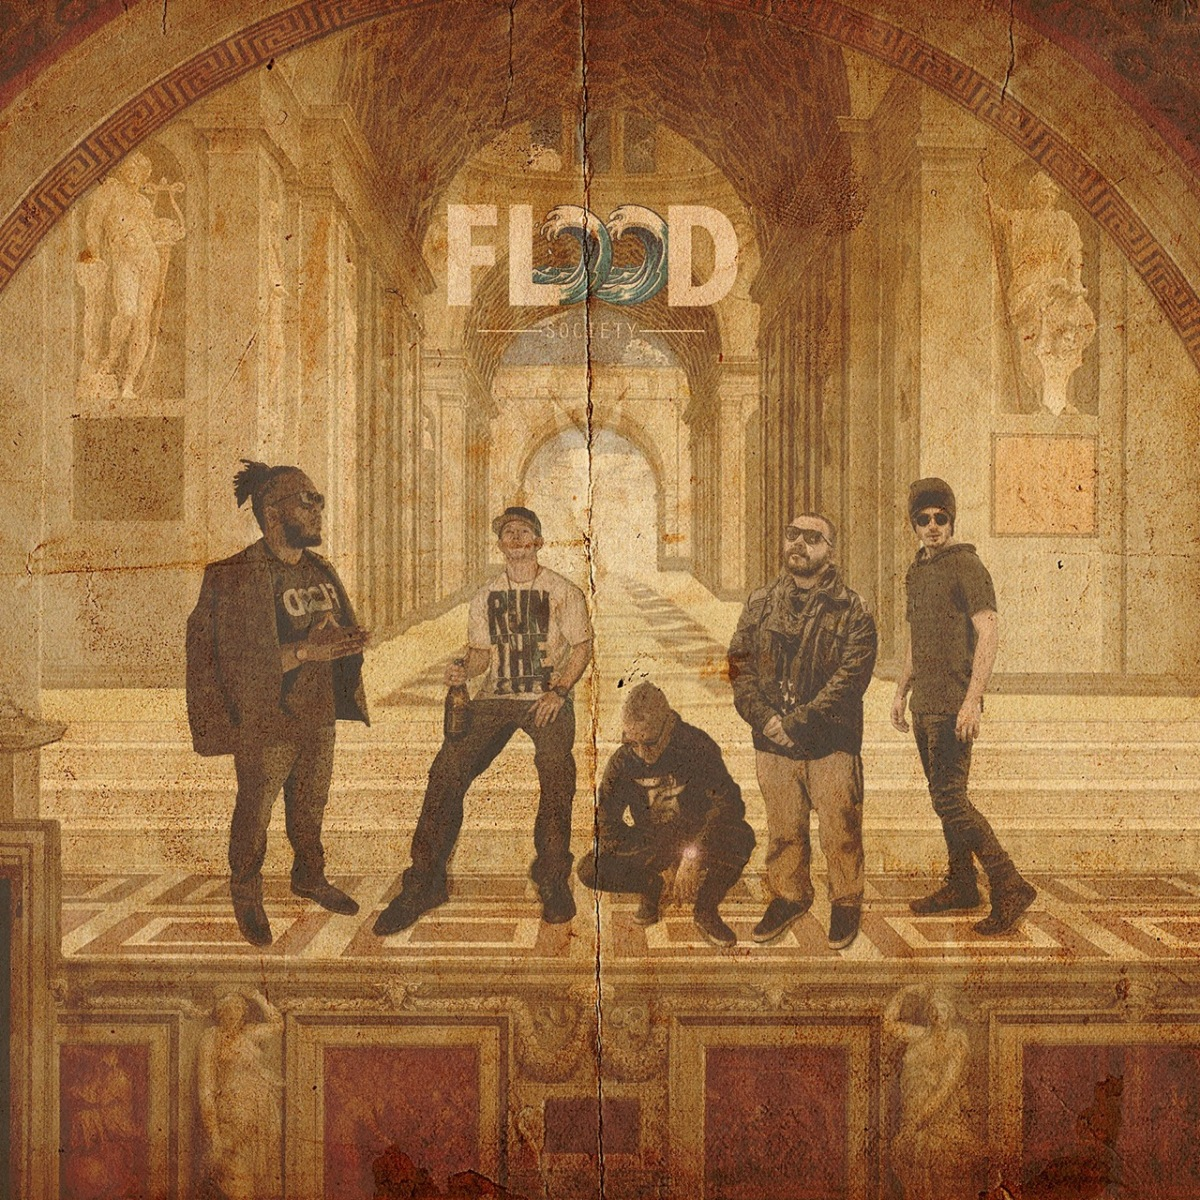 NEW ALBUM: Flood Society - Flood Society